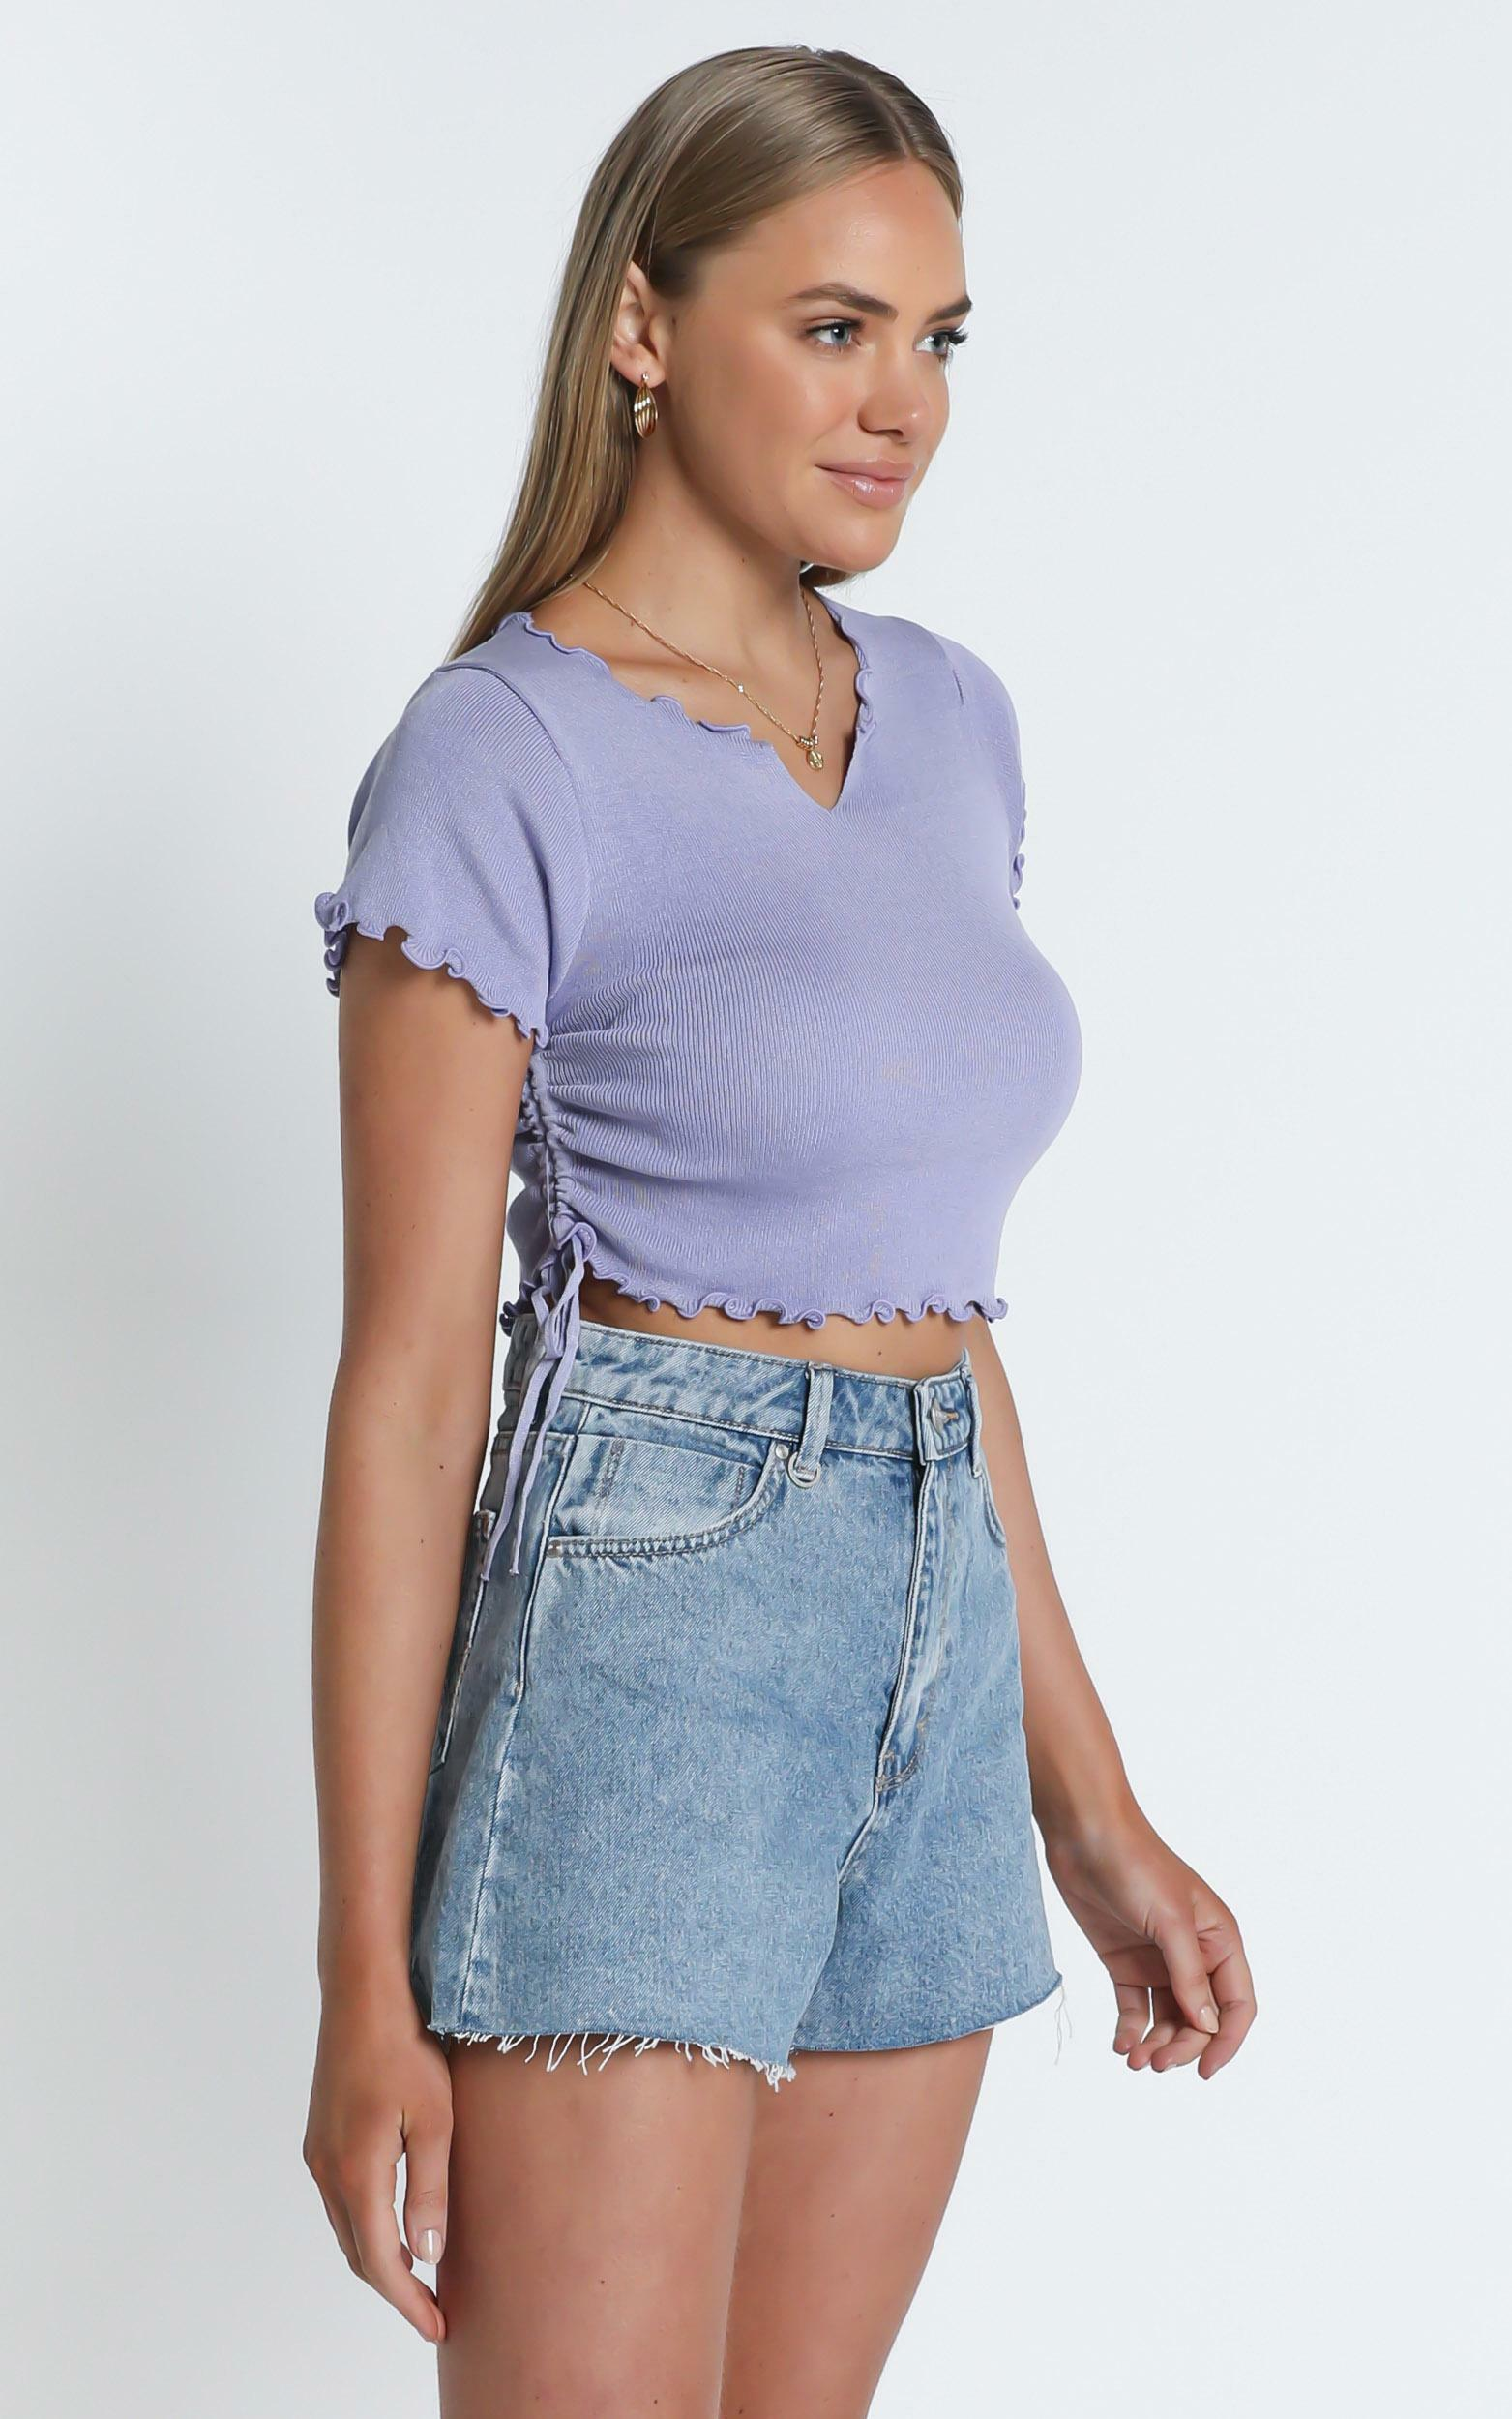 Bridie Top in Blue - S/M, Blue, hi-res image number null